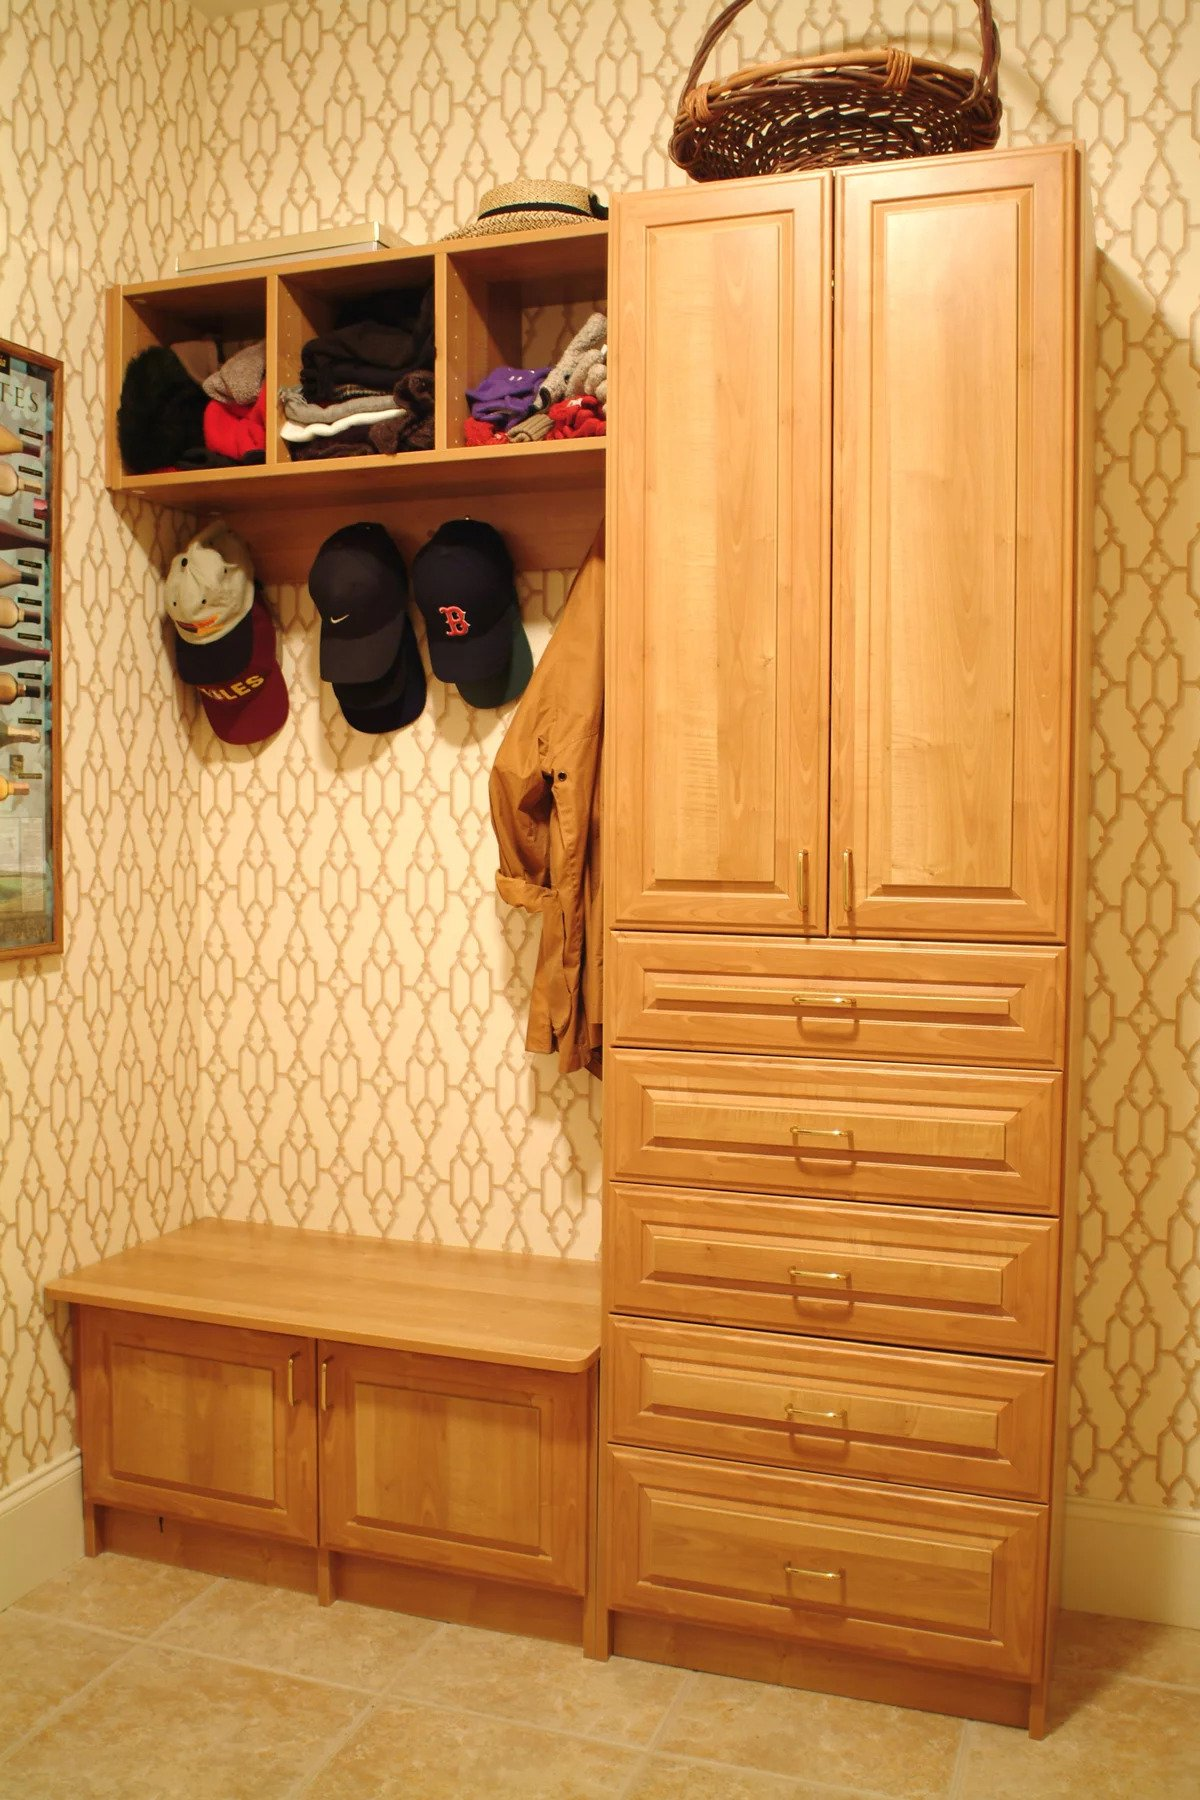 Organized mudroom and entryway with clothing accessories hung and stored in cubbies